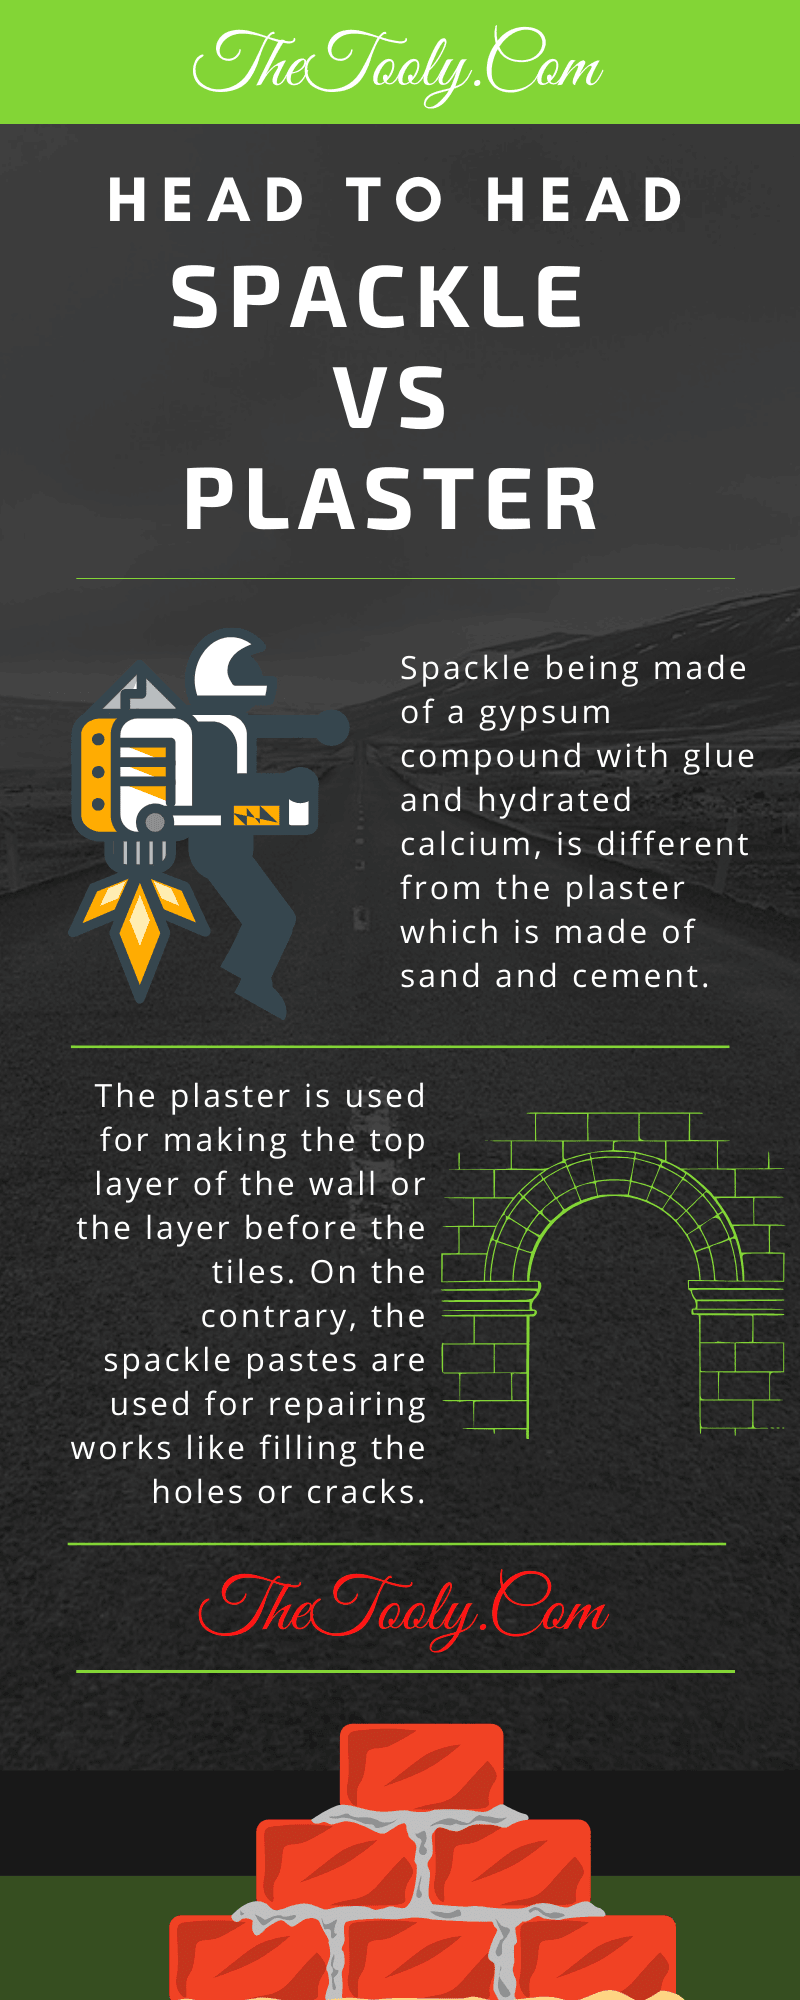 Spackle vs Plaster infographic